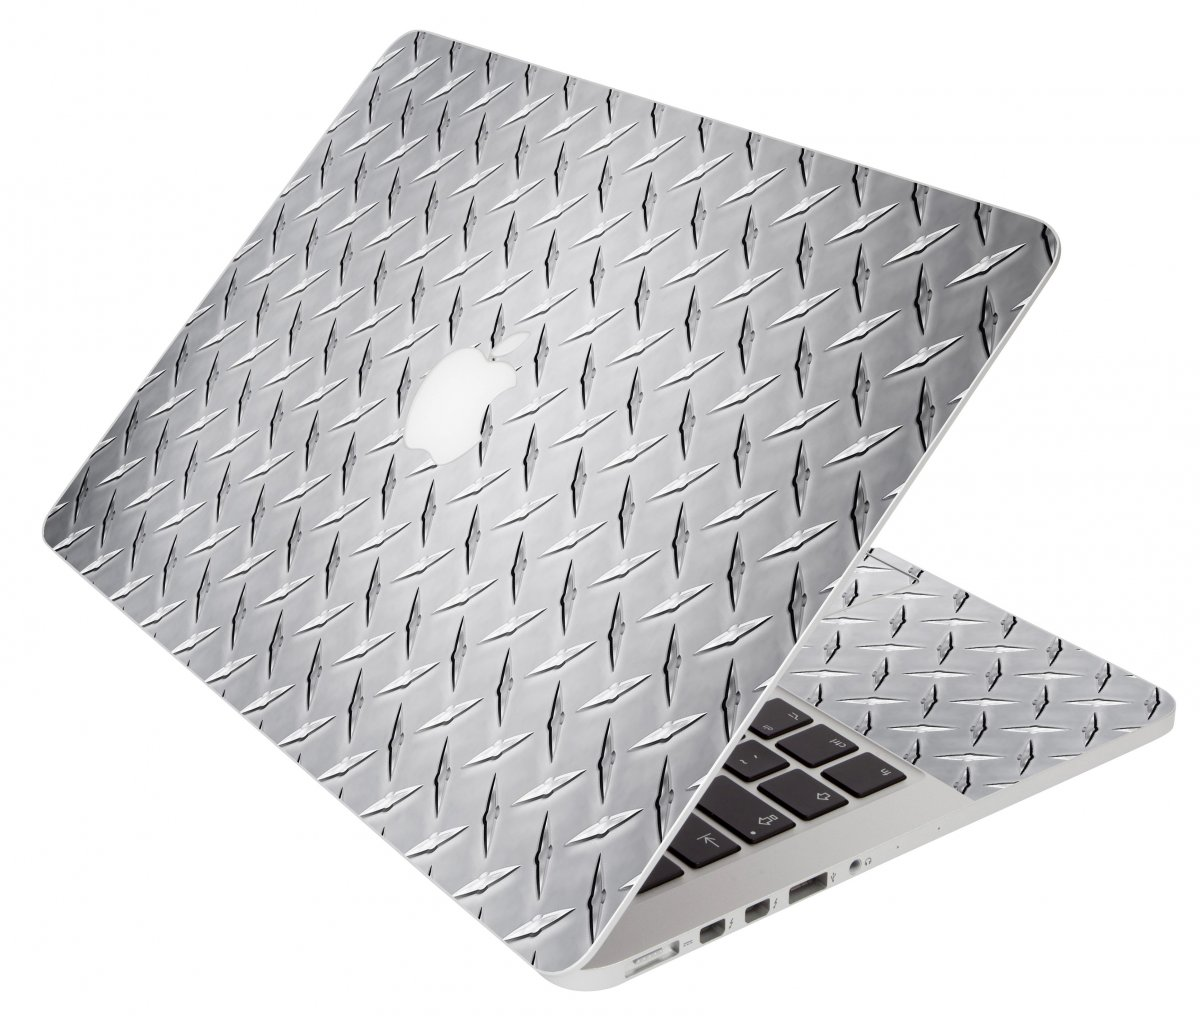 Diamond Plate Apple Macbook Air 11 A1370 Laptop Skin